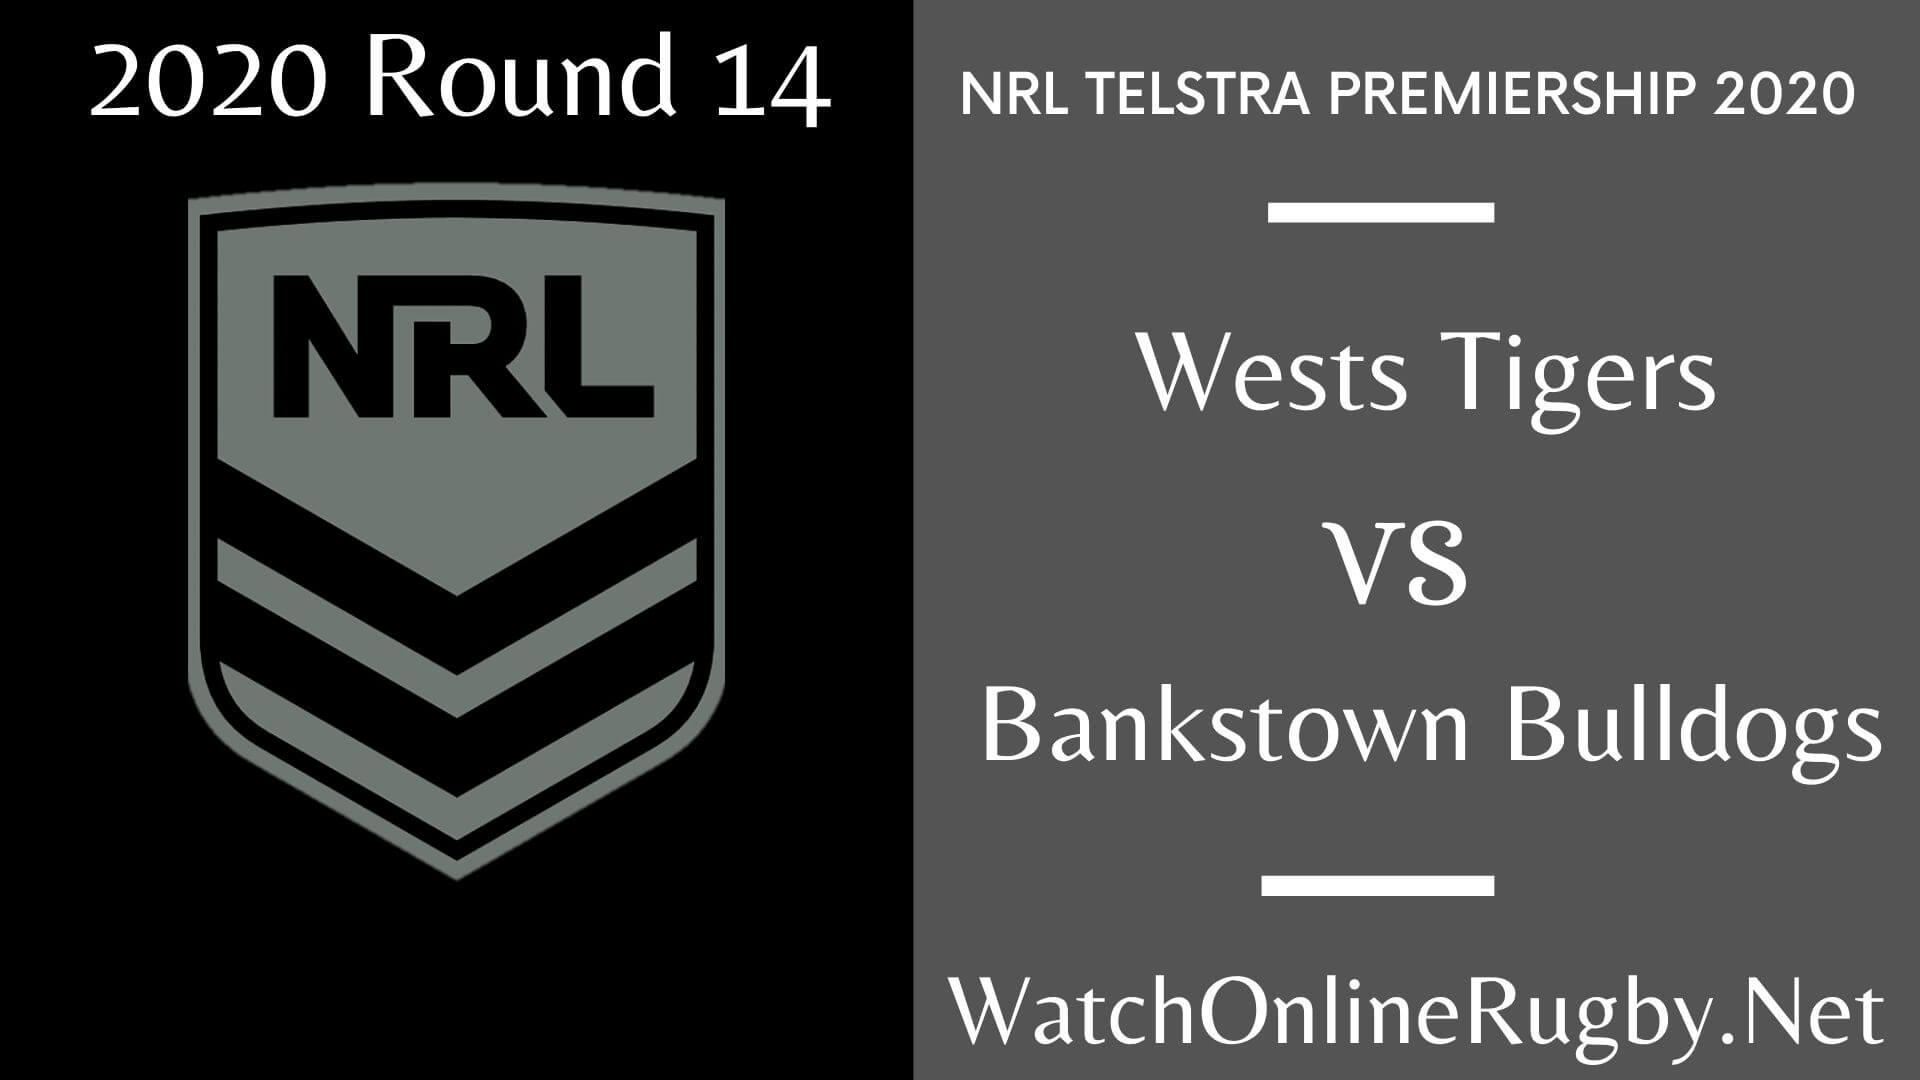 Wests Tigers Vs Bankstown Bulldogs Highlights 2020 Round 14 NRL Rugby